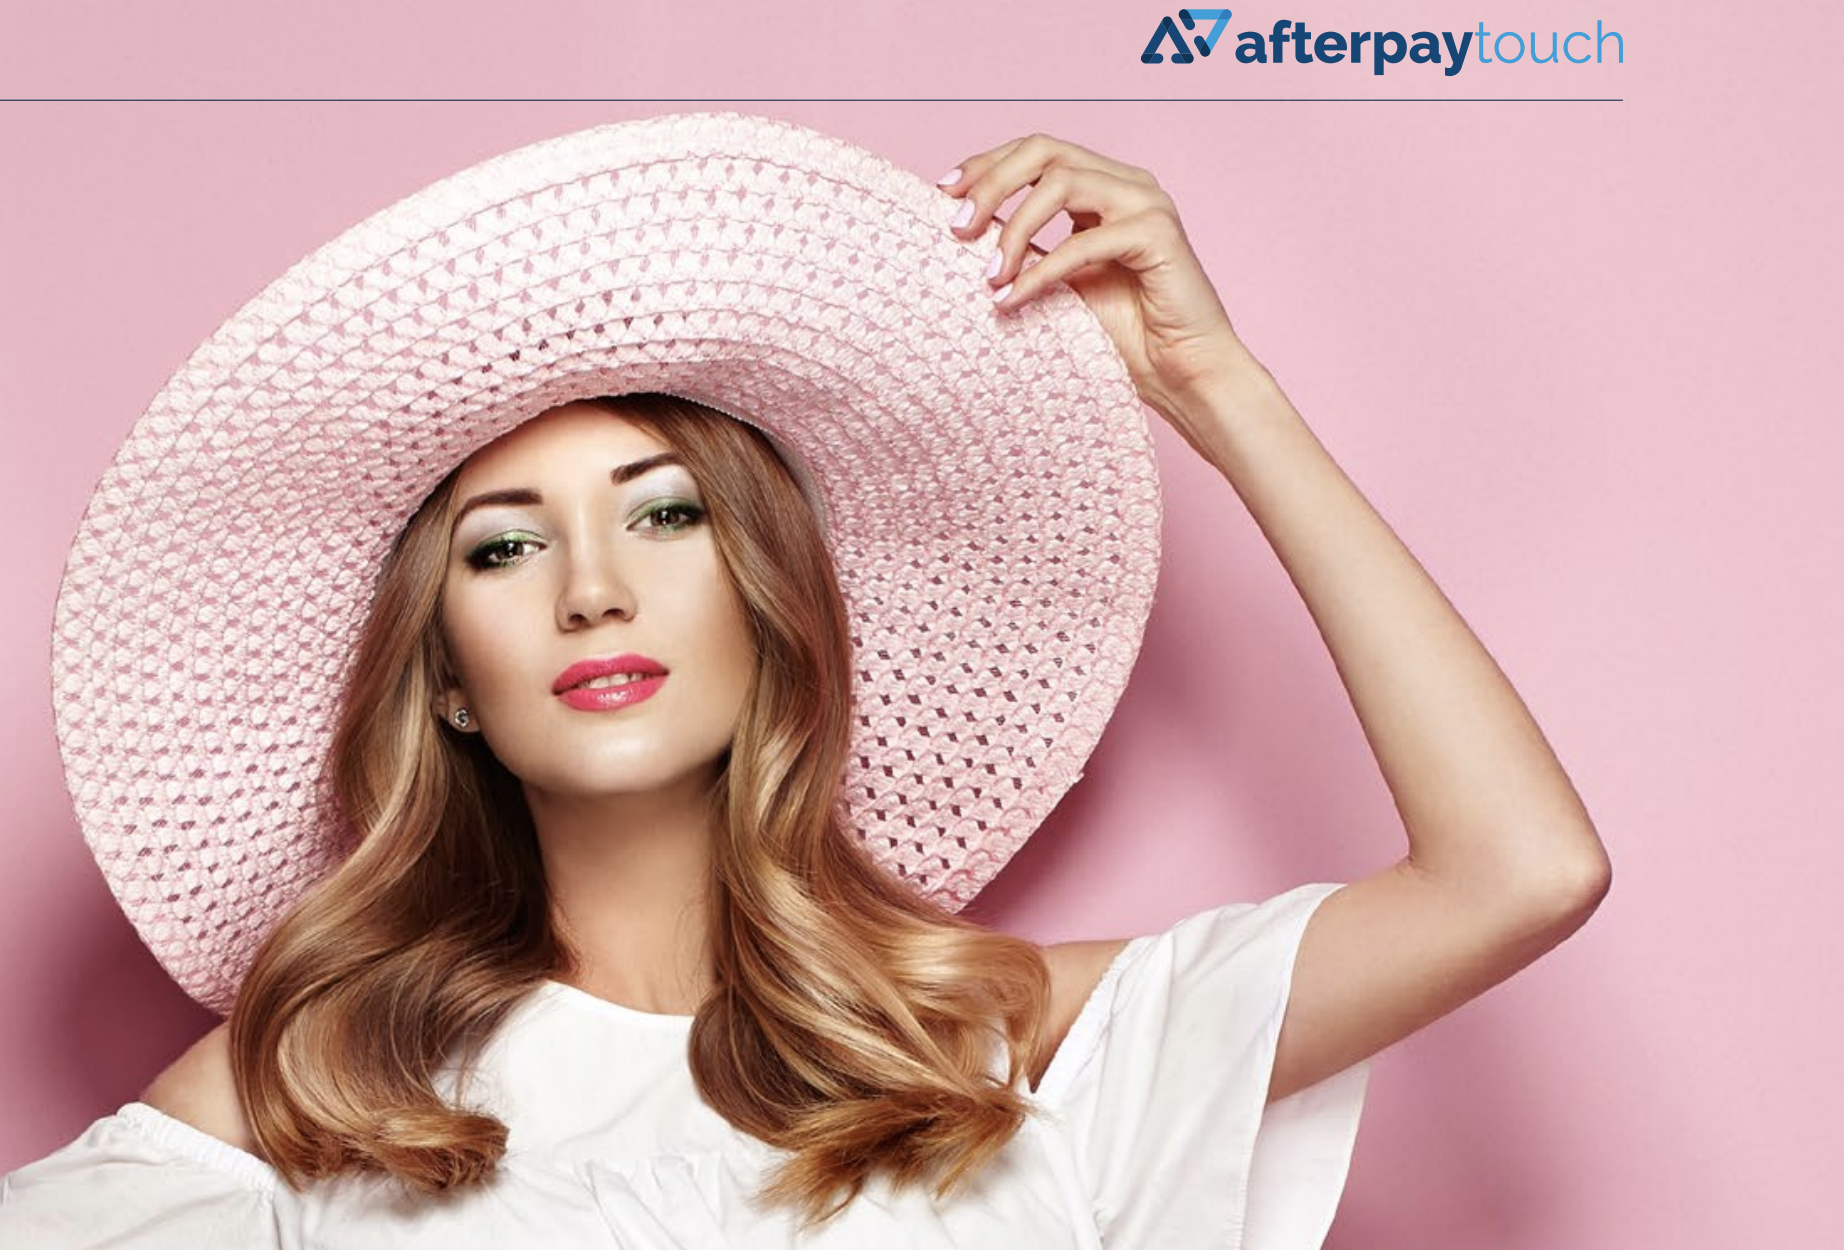 Buy-now, pay-later app Afterpay is booming